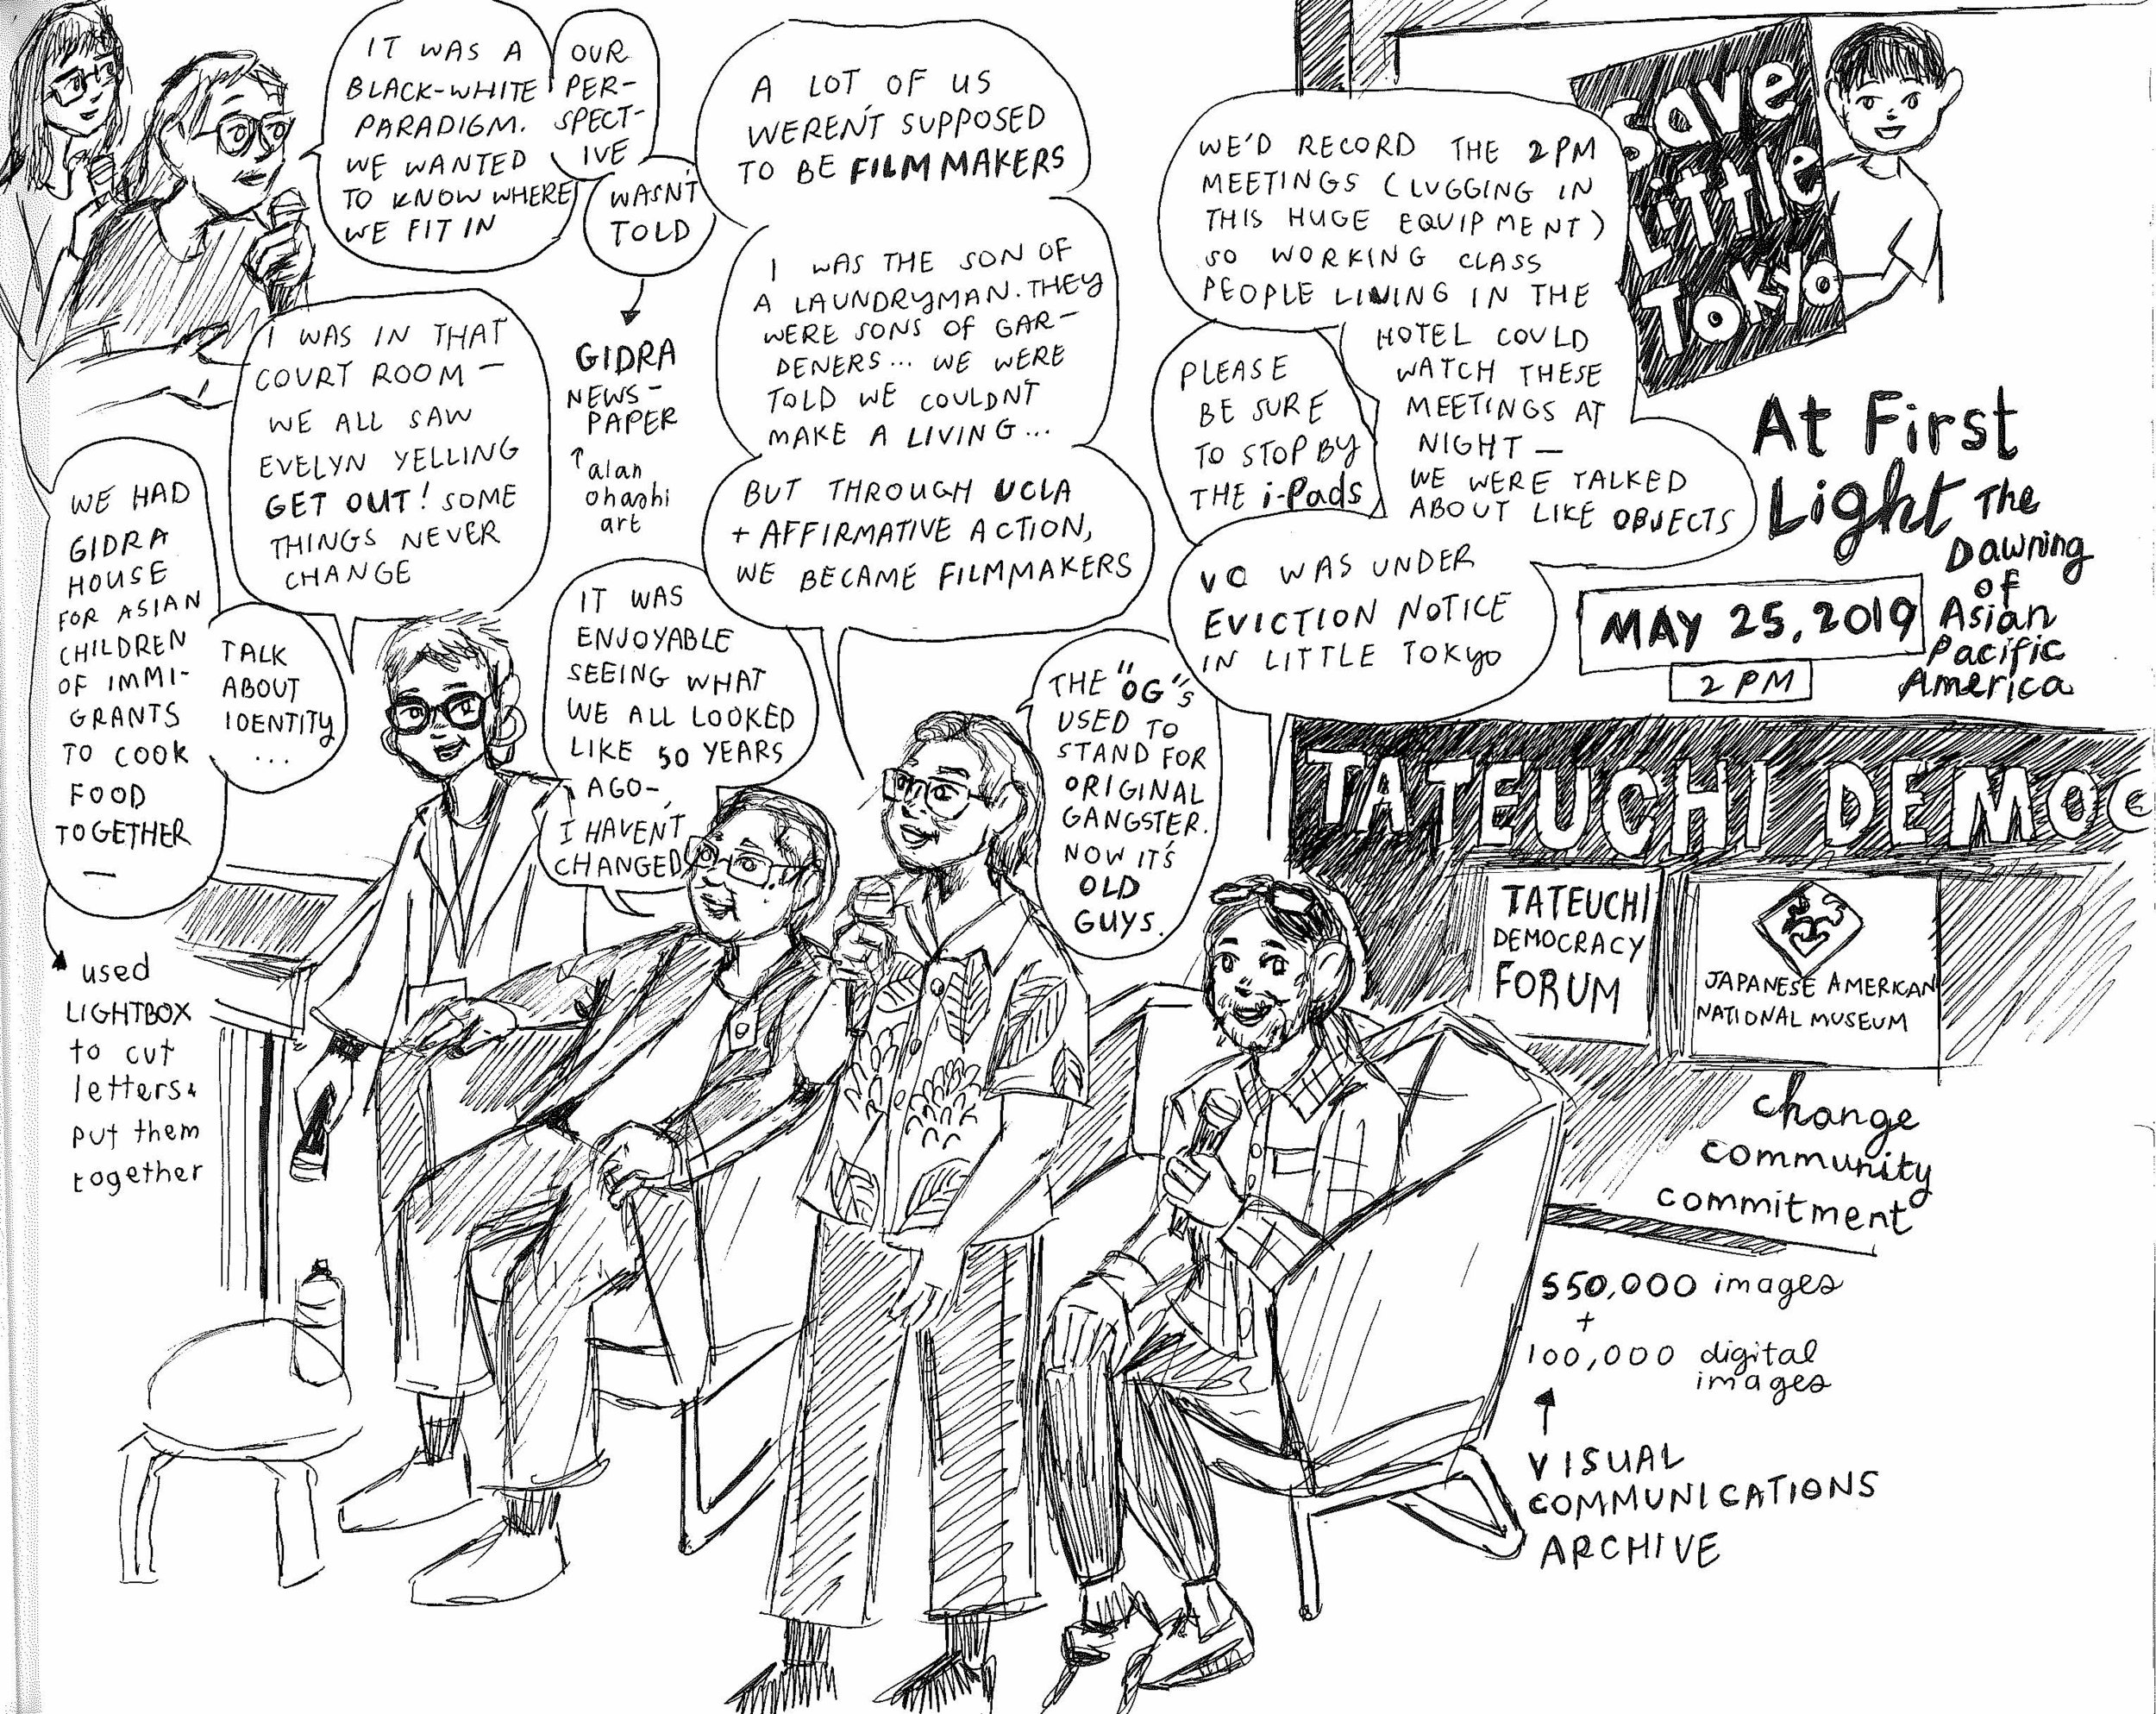 Sketch by Angel Trazo, one of the attendees of the event